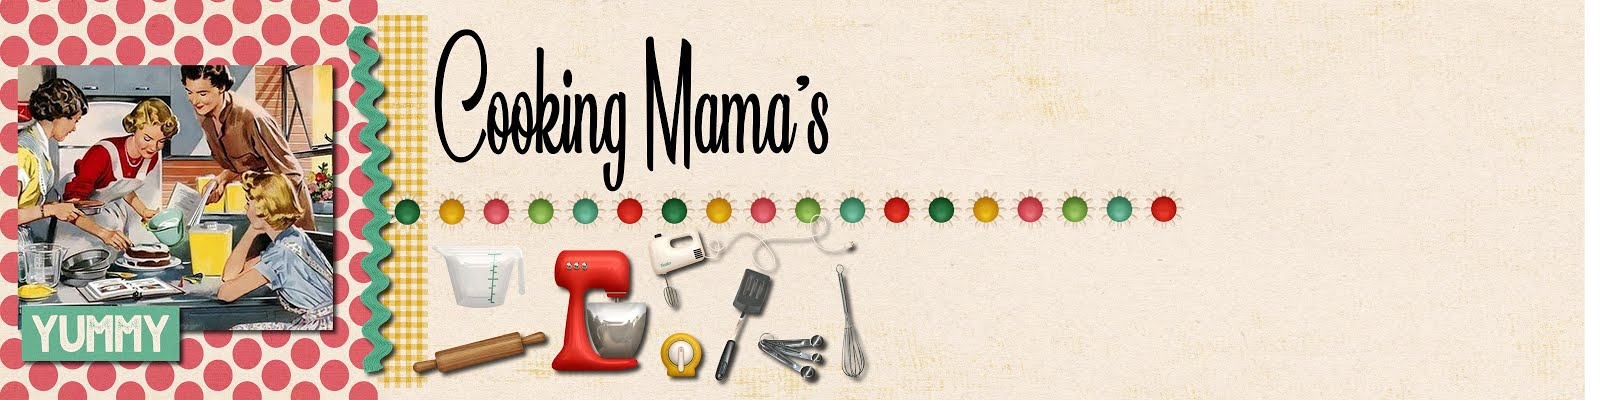 Cooking Mama's